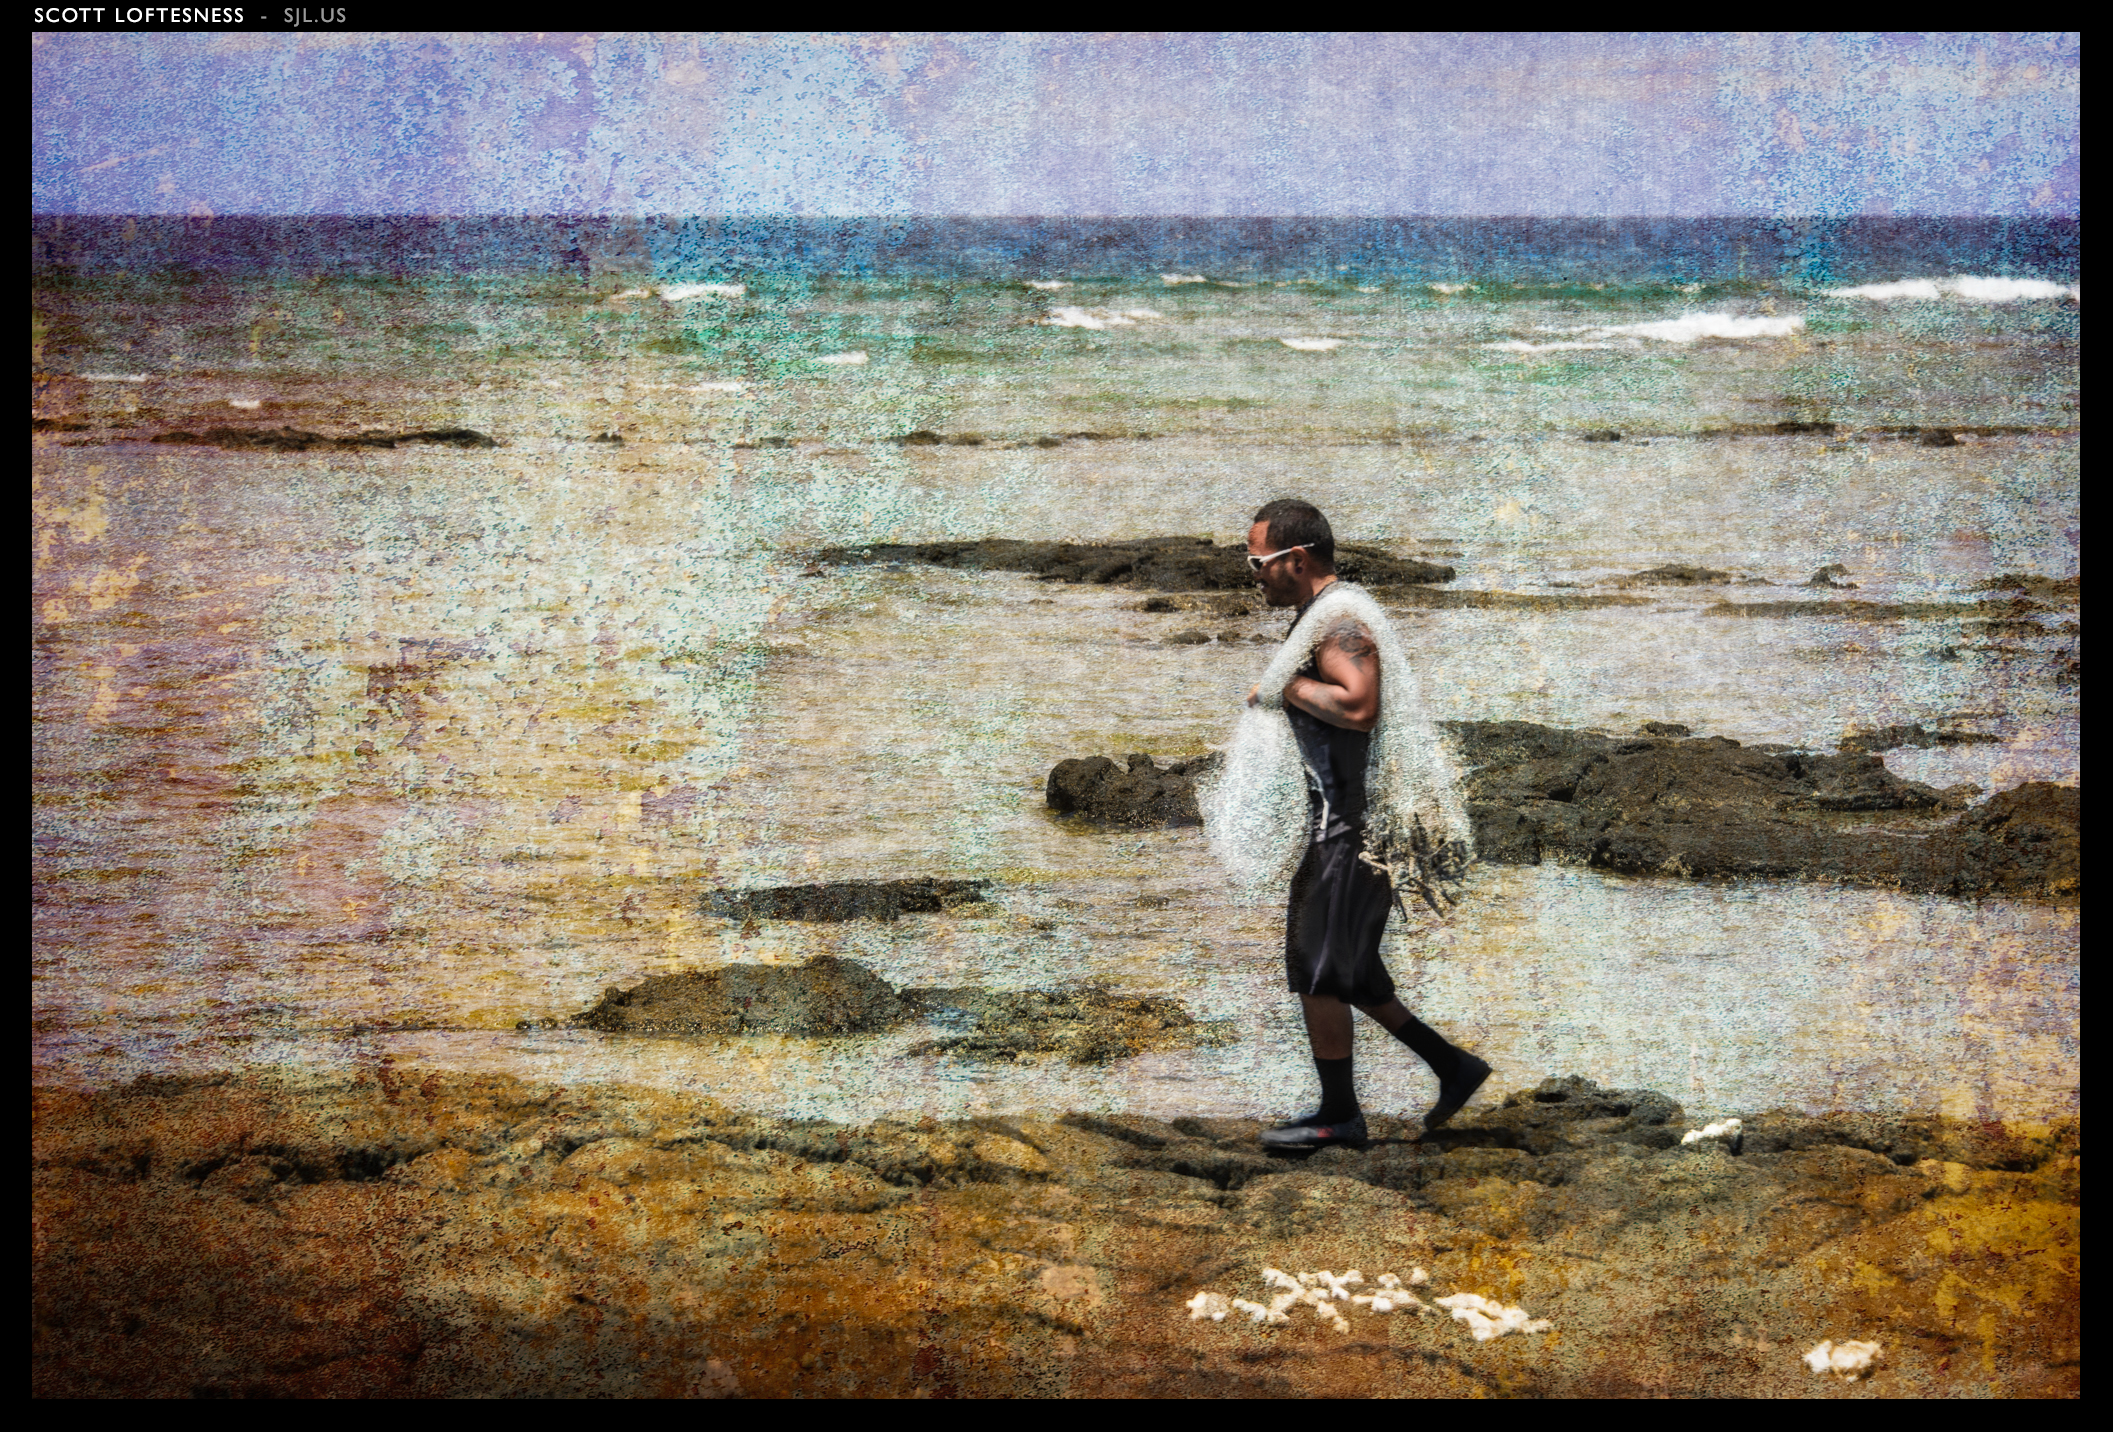 Fisherman - Hawaii - 2013